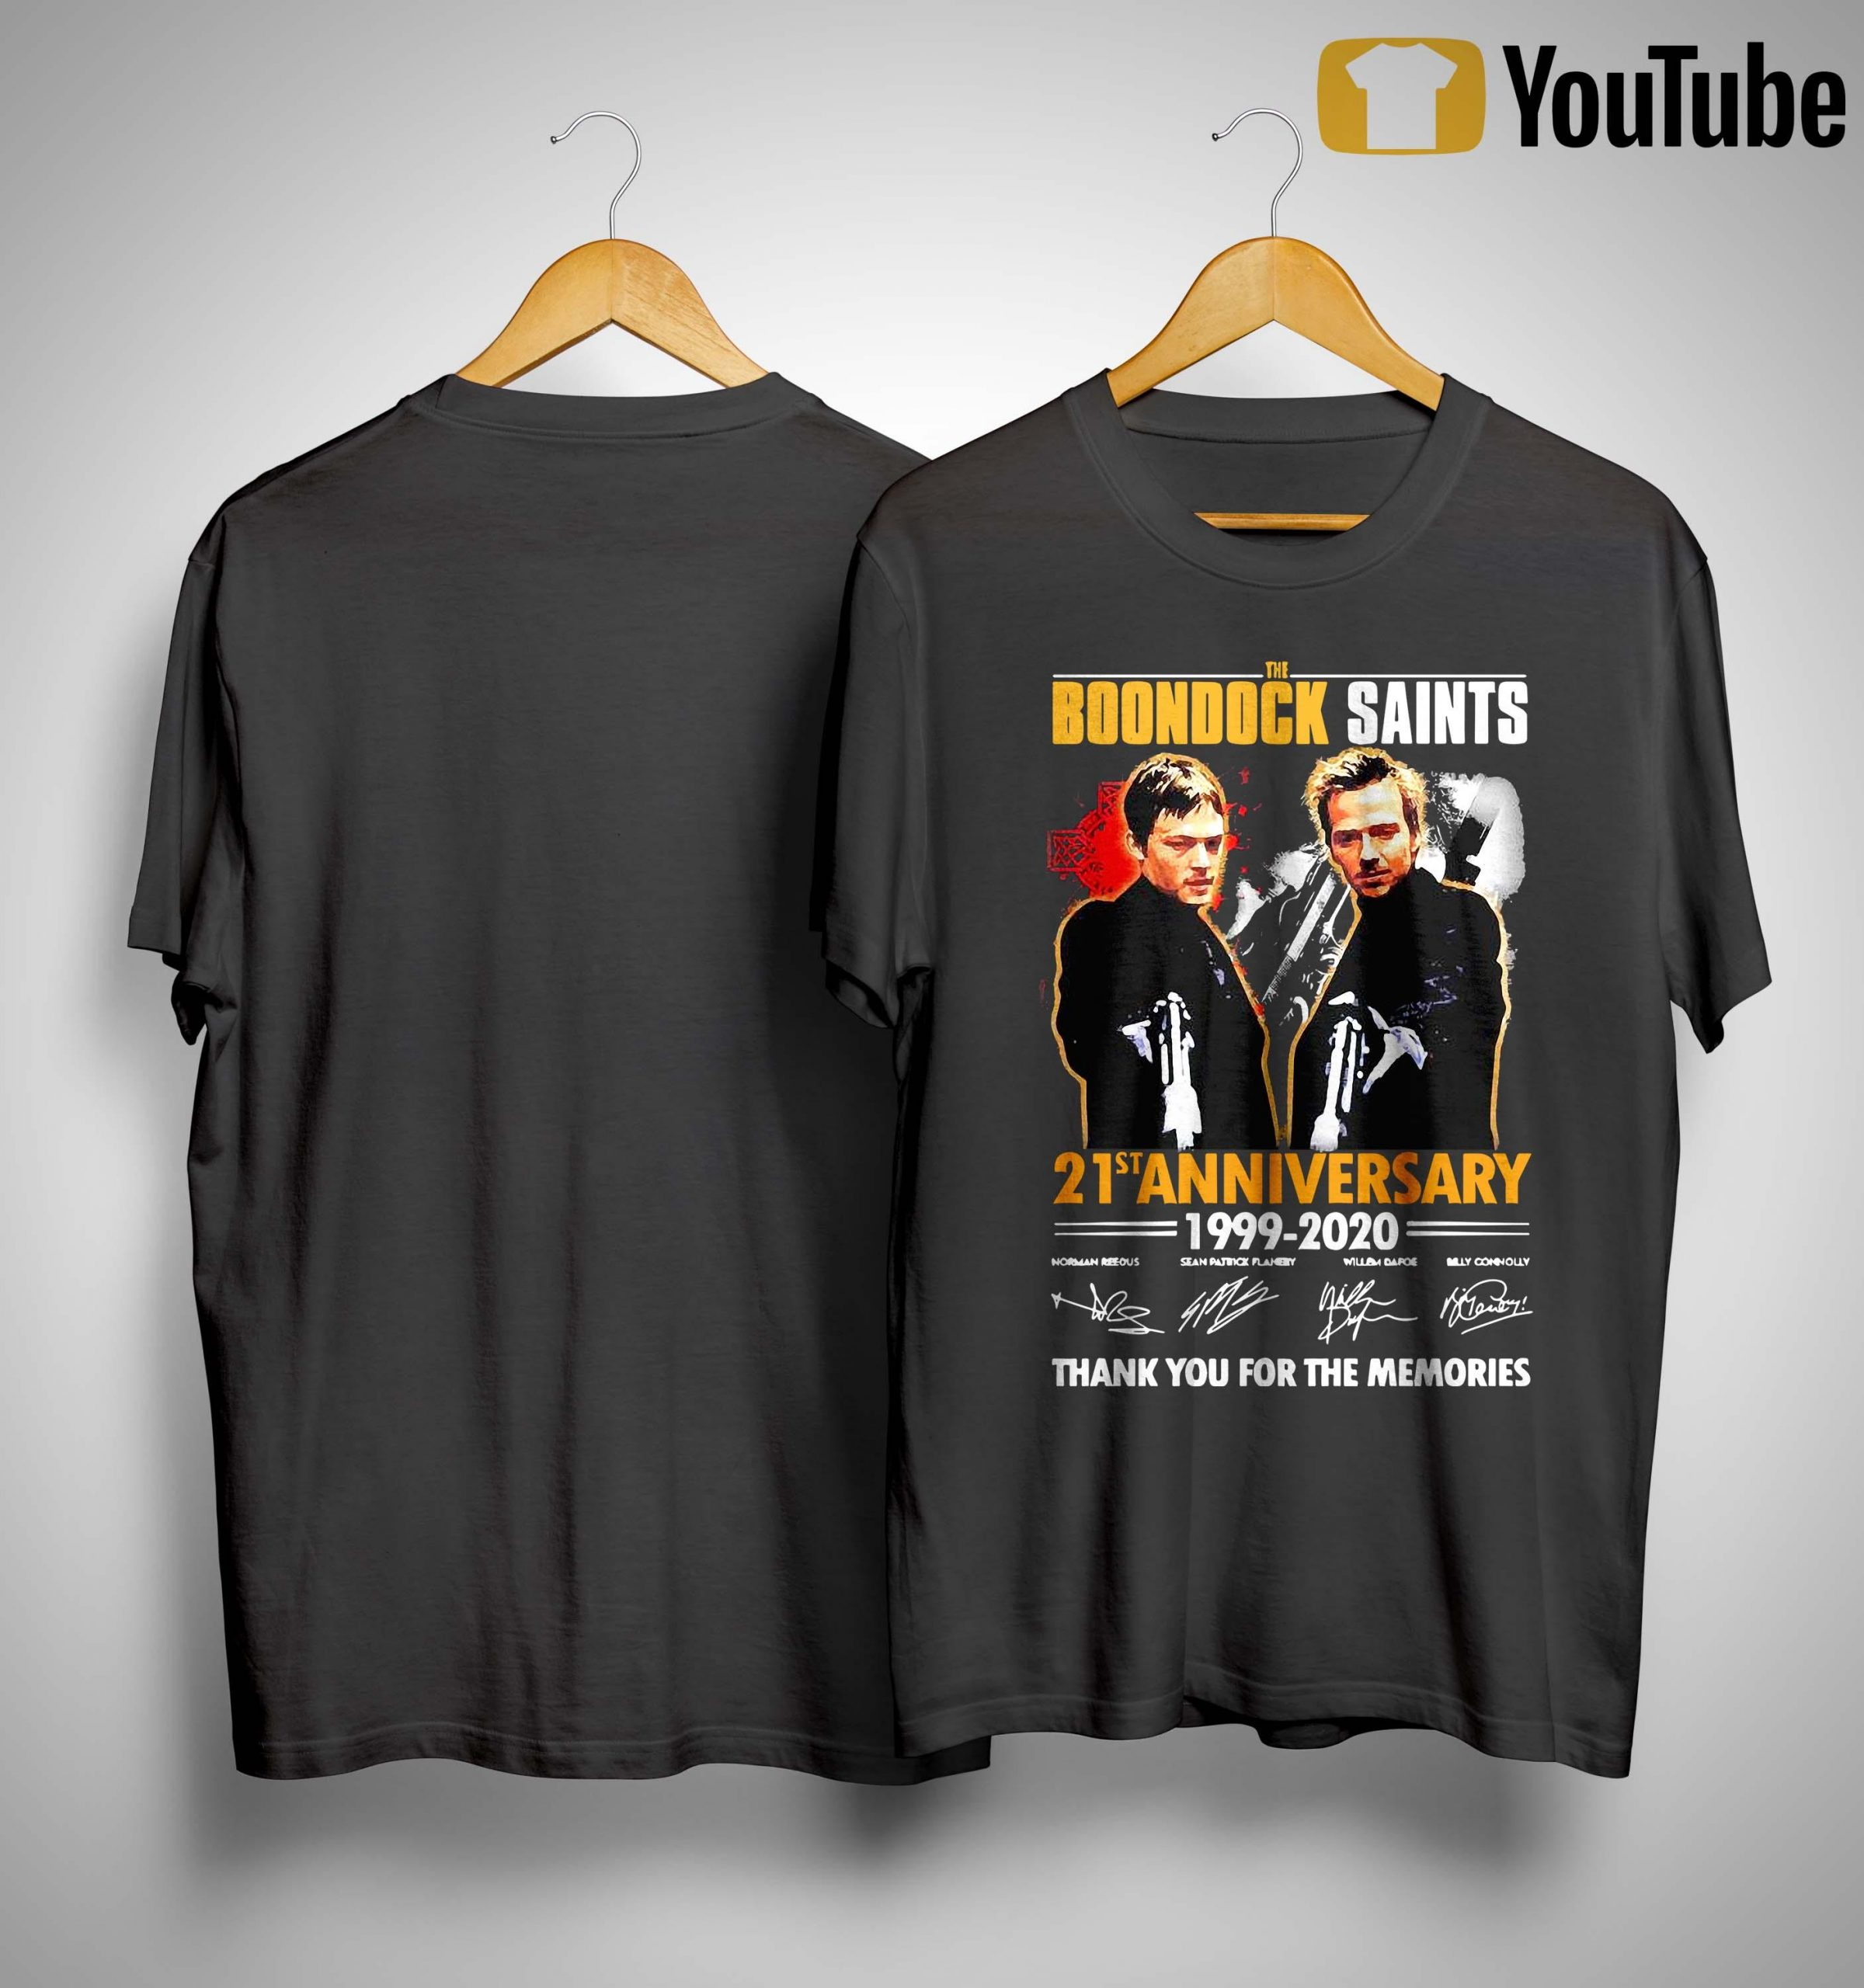 The Boondock Saints 21st Anniversary 1999 2020 Thank You For The Memories Shirt